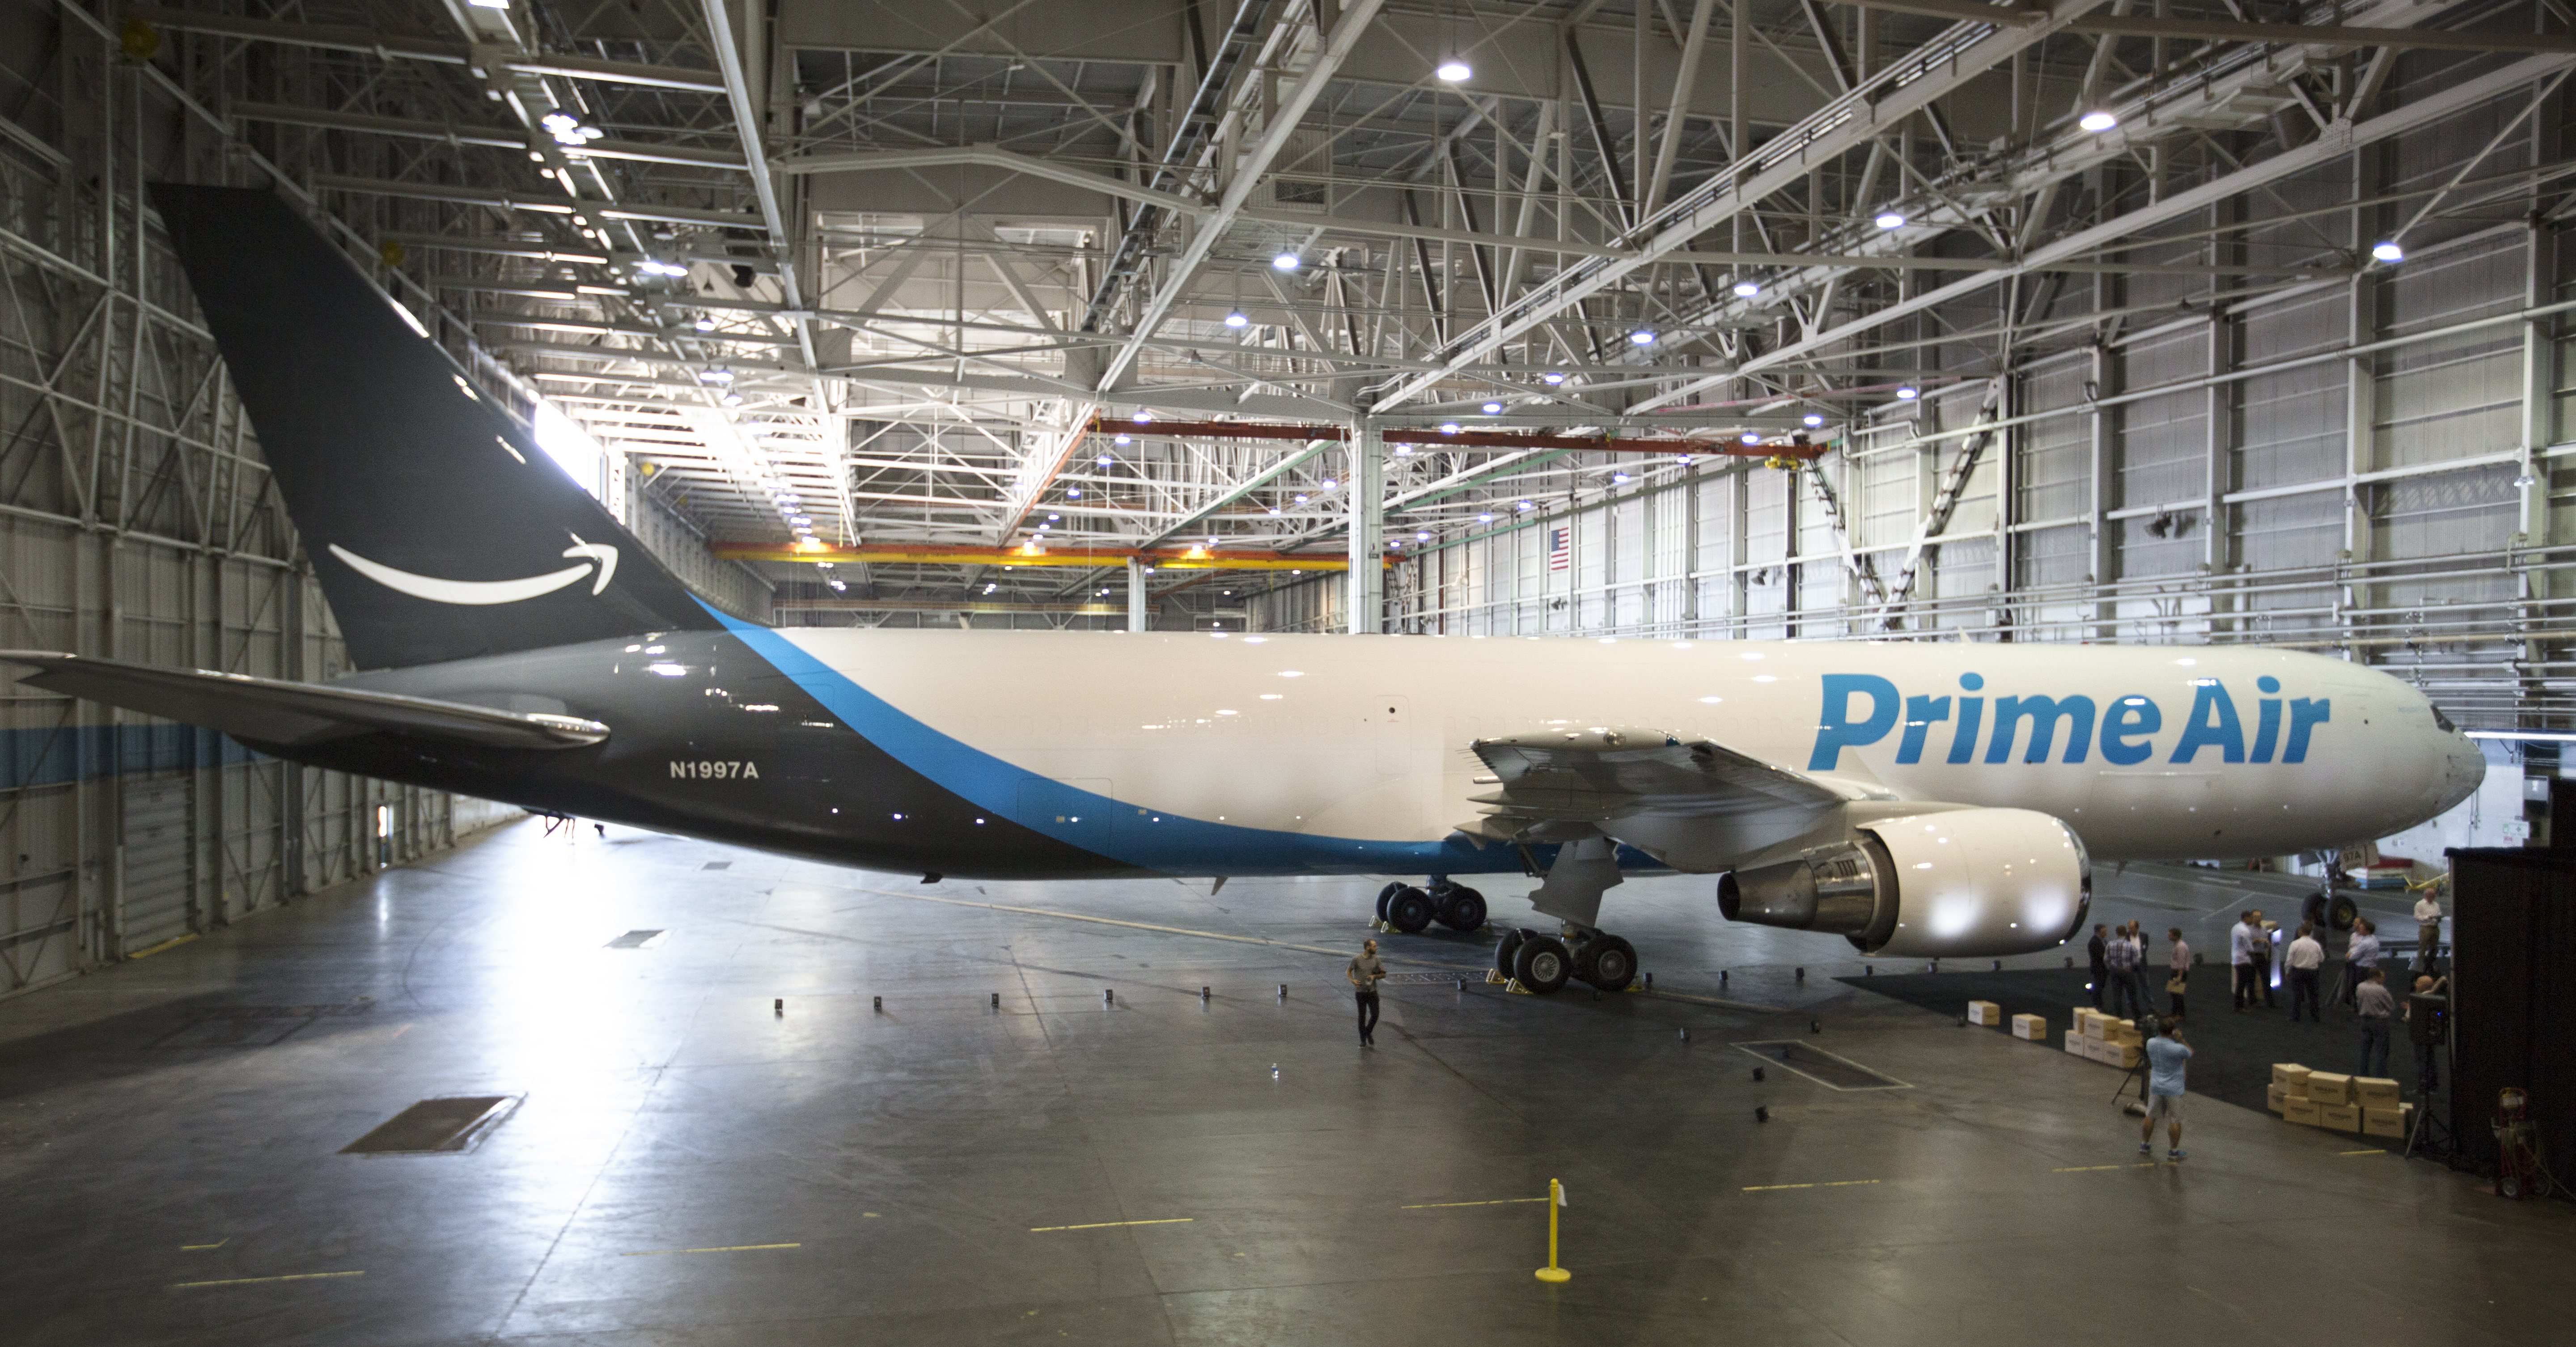 Amazon One Prime Air cargo plane